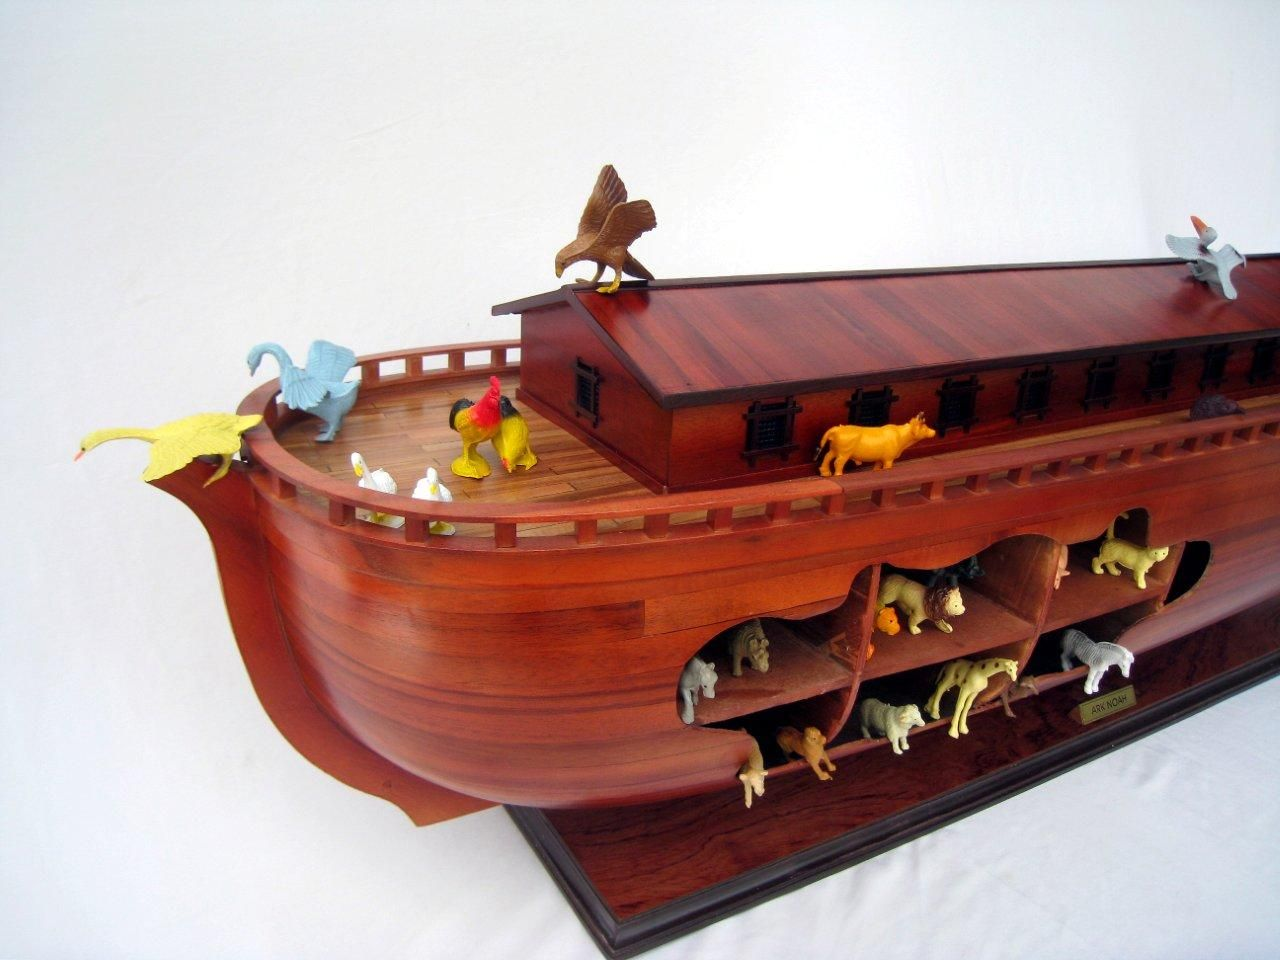 2043-12563-Noahs-Ark-Model-Boat